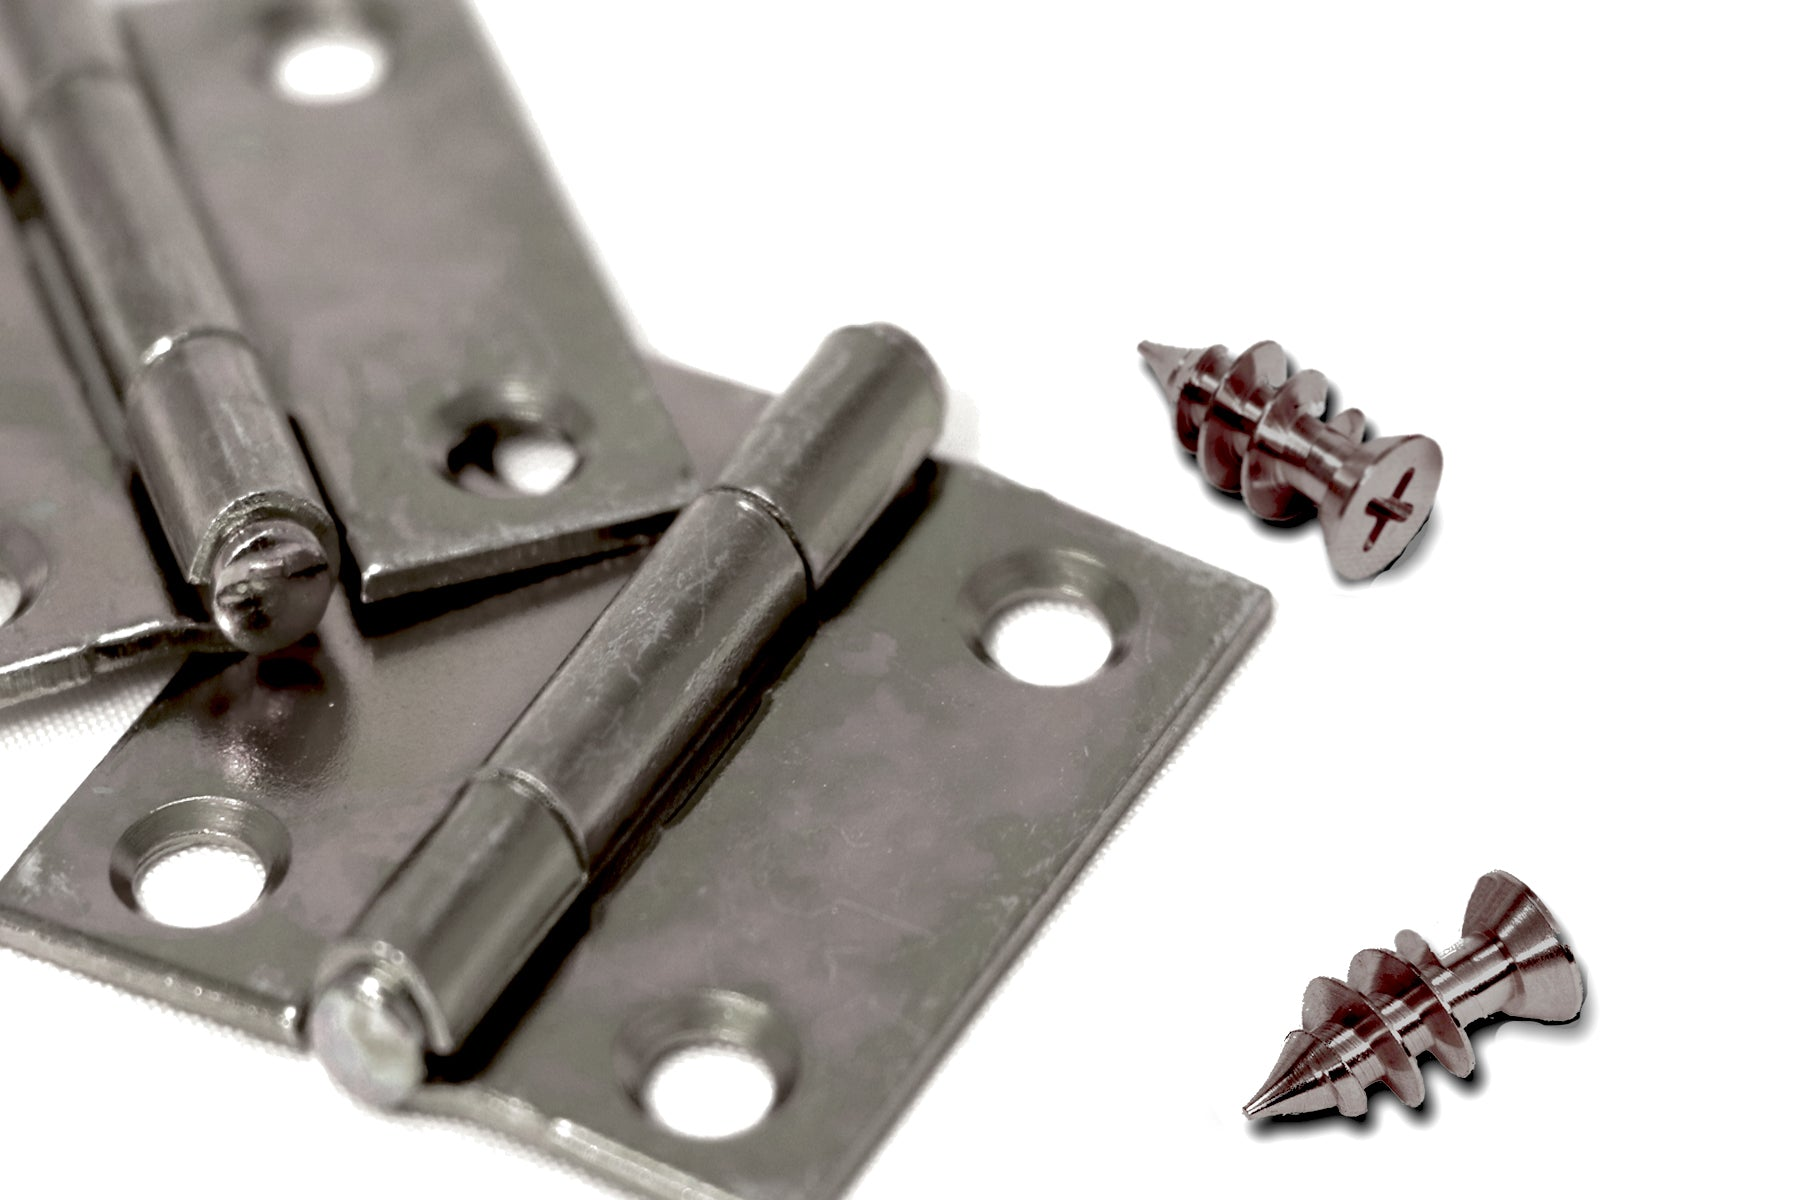 Nickel Rehinge Cabinet Reapir Screw Fix Loose Hinges